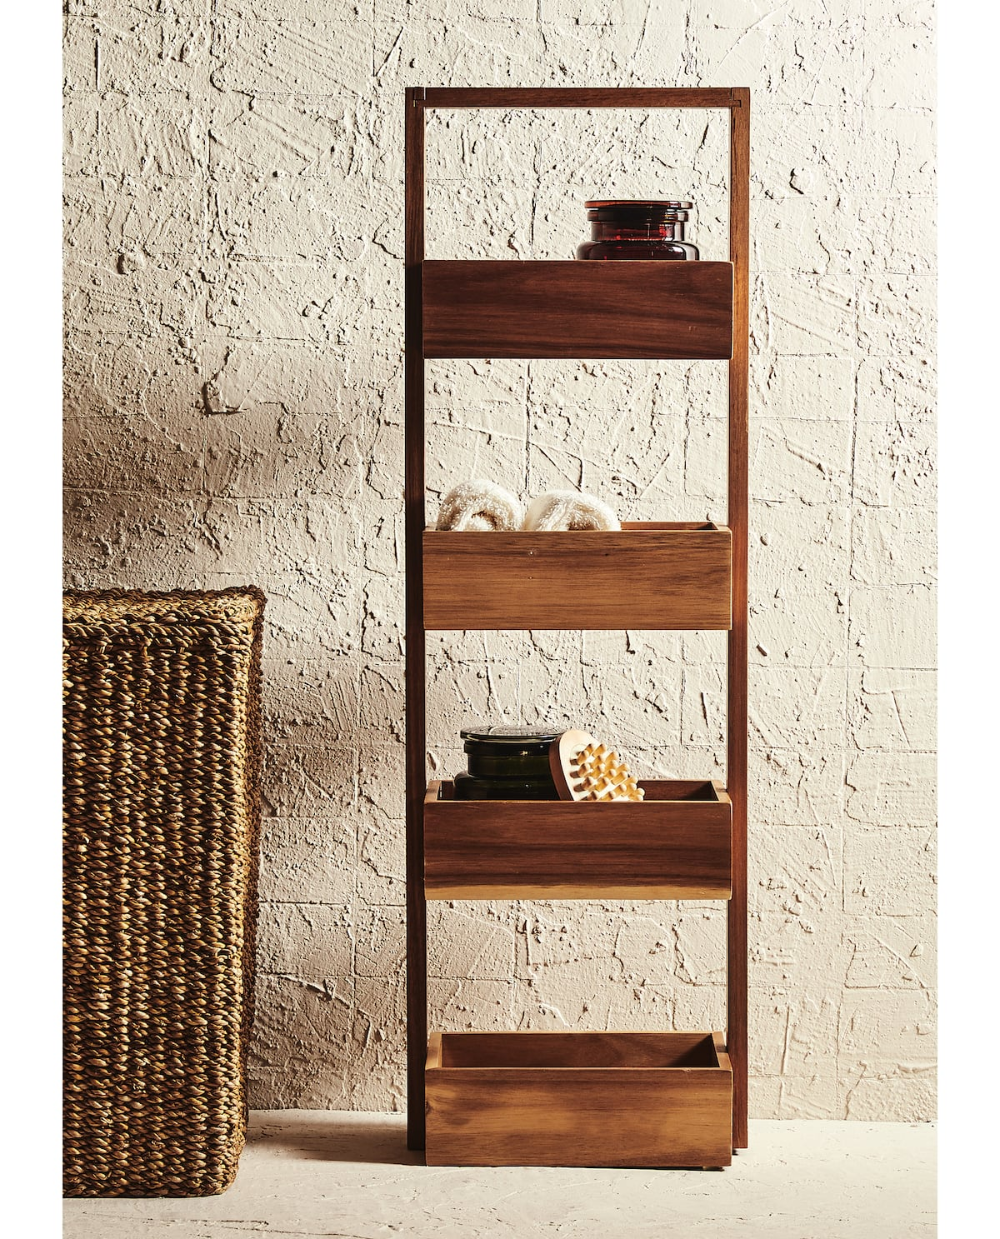 Image 10 of the product STORAGE FURNITURE  Zara home bathroom